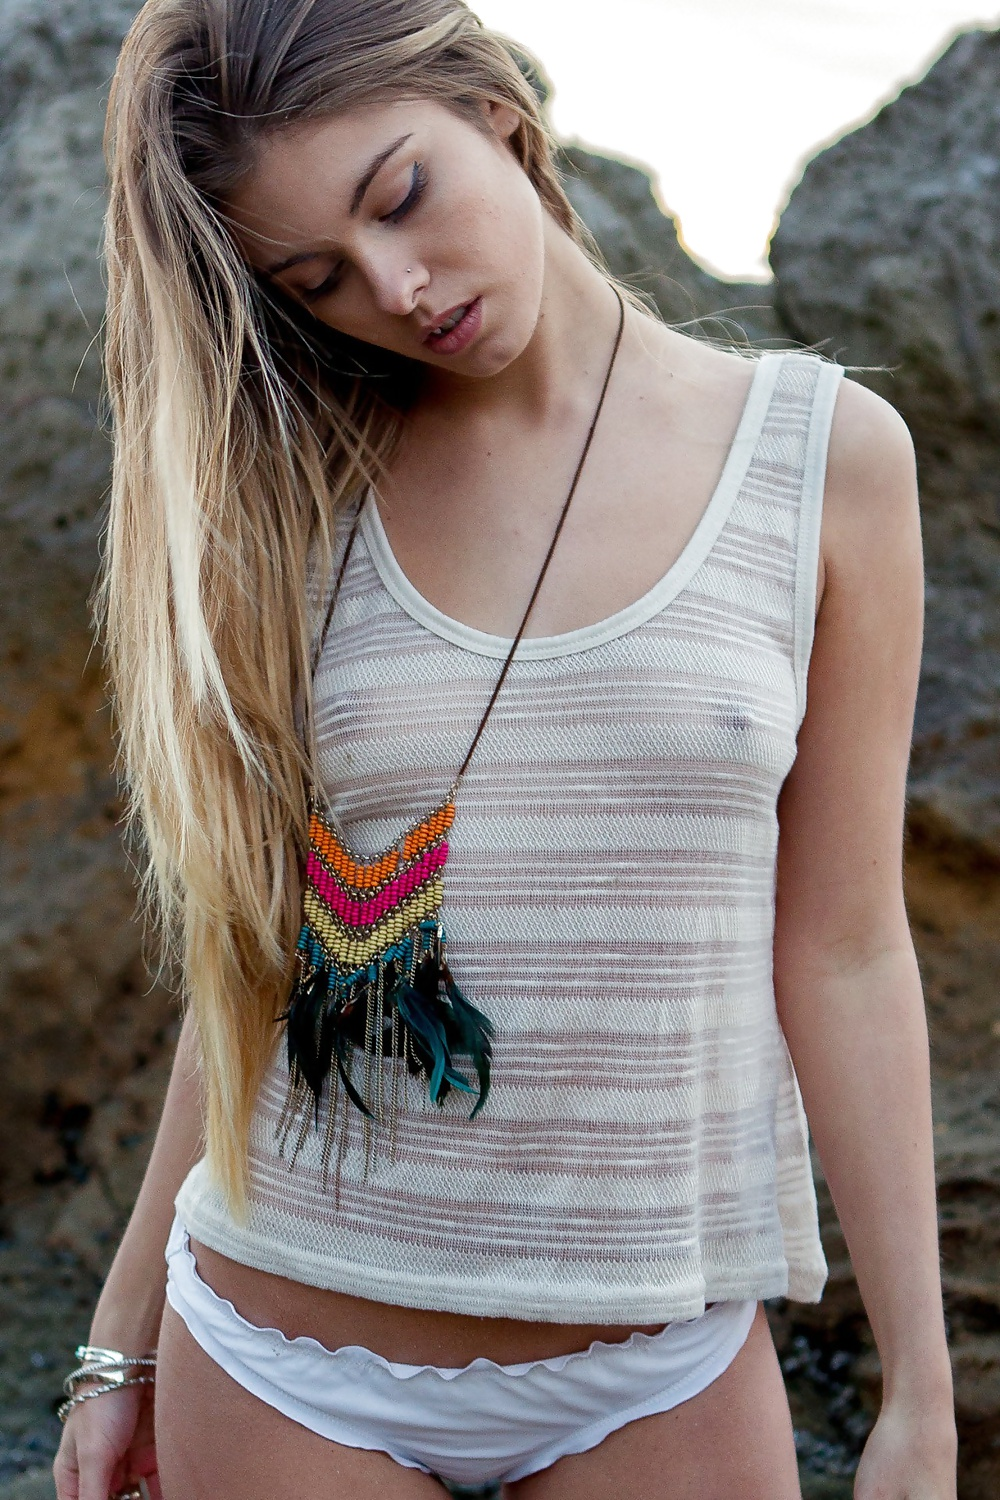 Cute Teen Pictures Dressed Girls 25